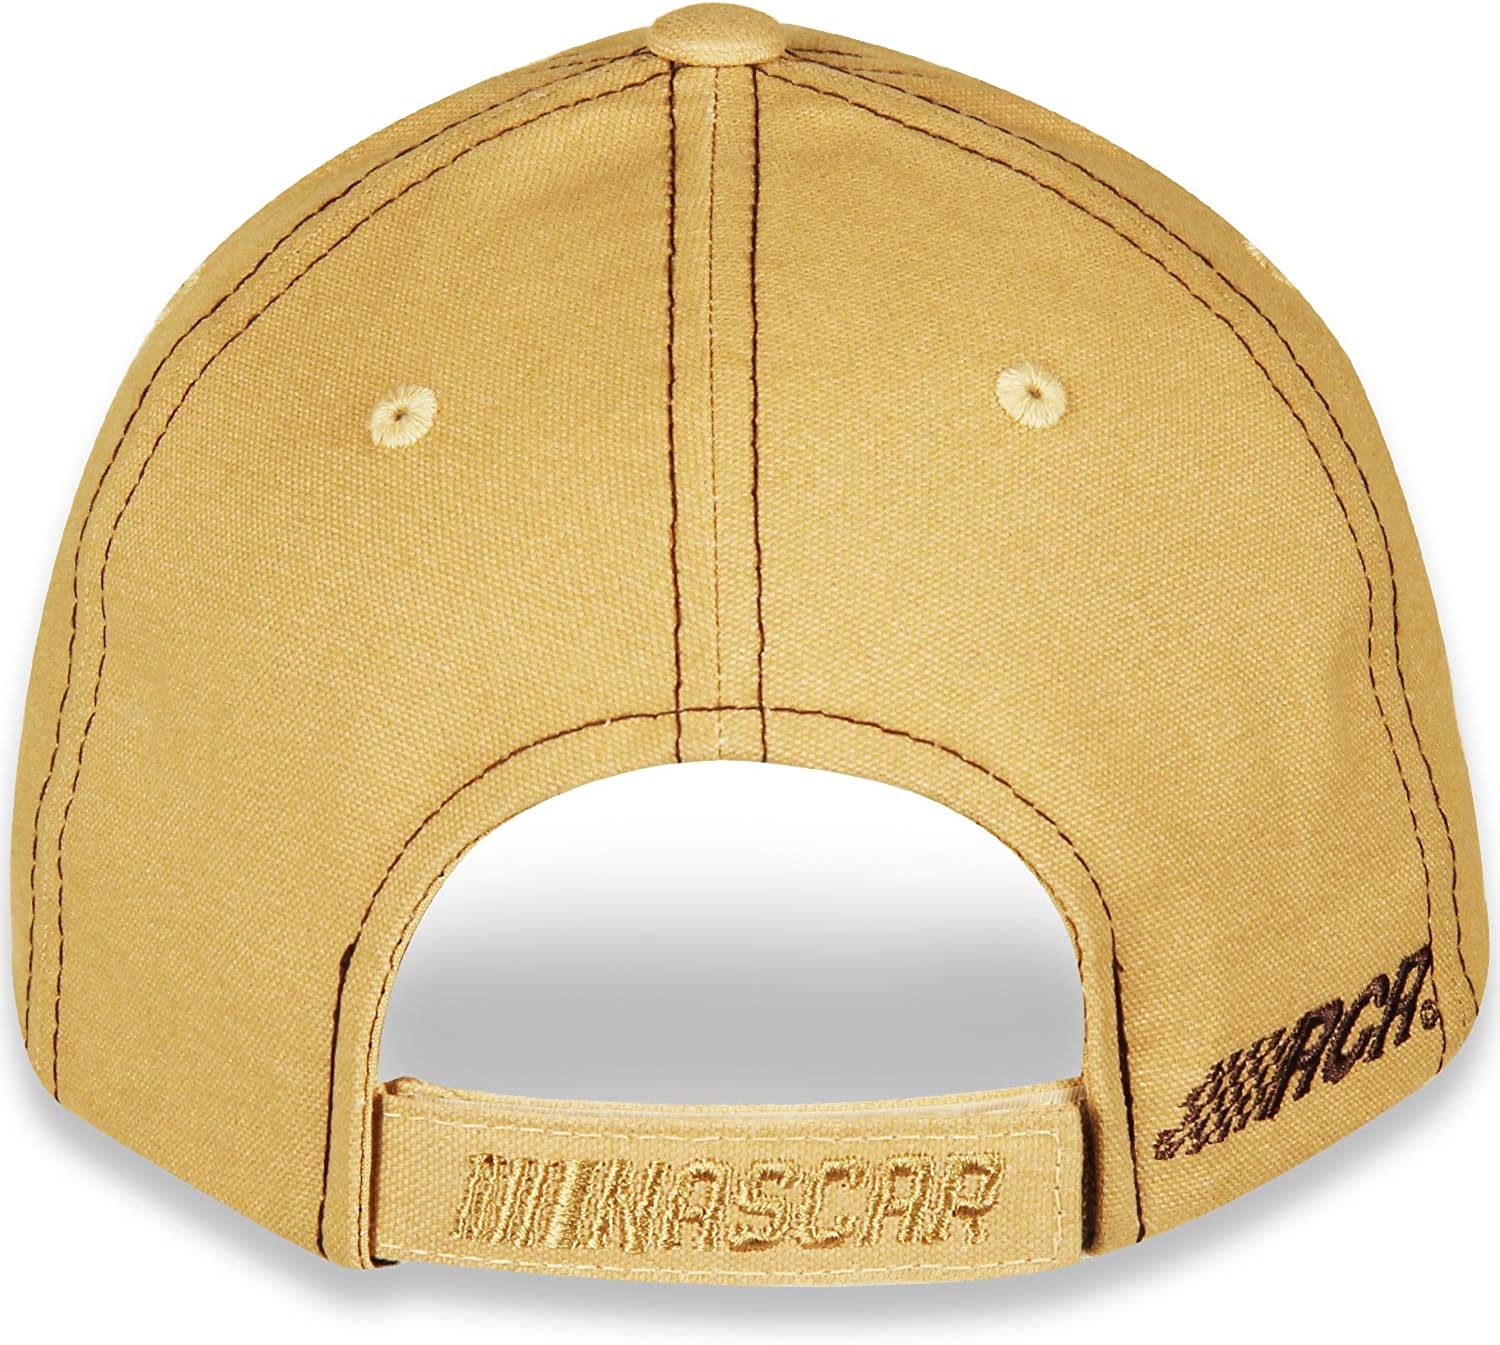 Gills-N-Game Dale Earnhardt Sr #3 Mustard Yellow Brushed Twill Hat//Cap with Velcro Closure